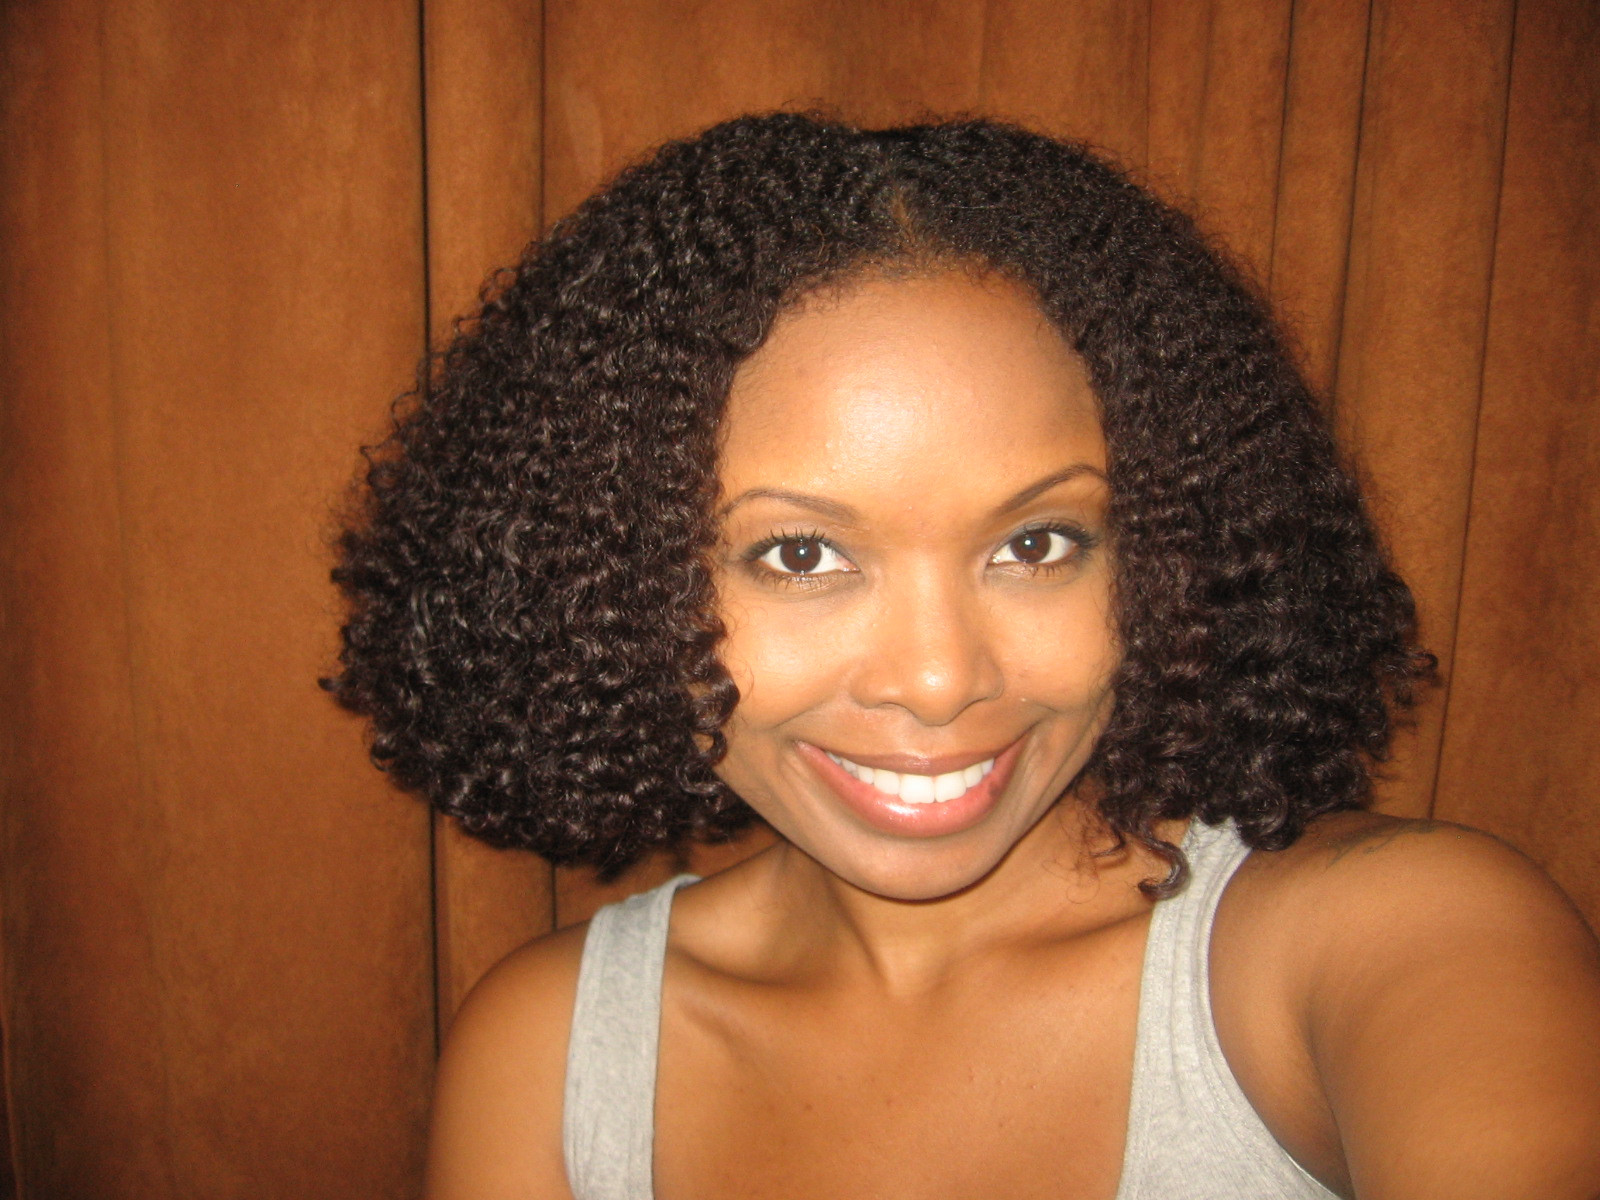 Best ideas about Going Natural Hairstyles . Save or Pin Going Natural 101– The Methods CurlyNikki Now.